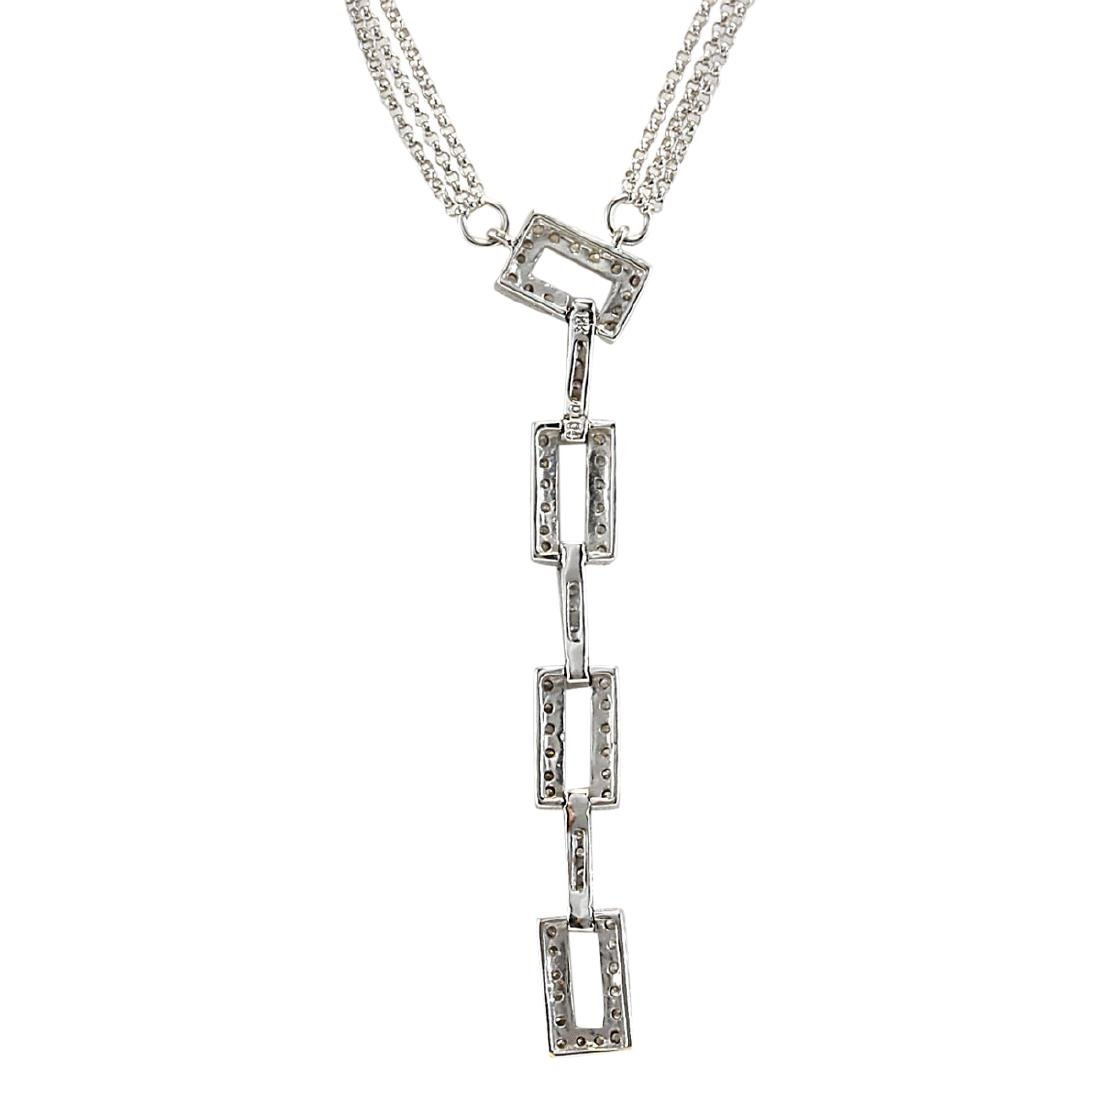 1.04 CTW Natural Diamond Necklace In 18K White Gold - 2